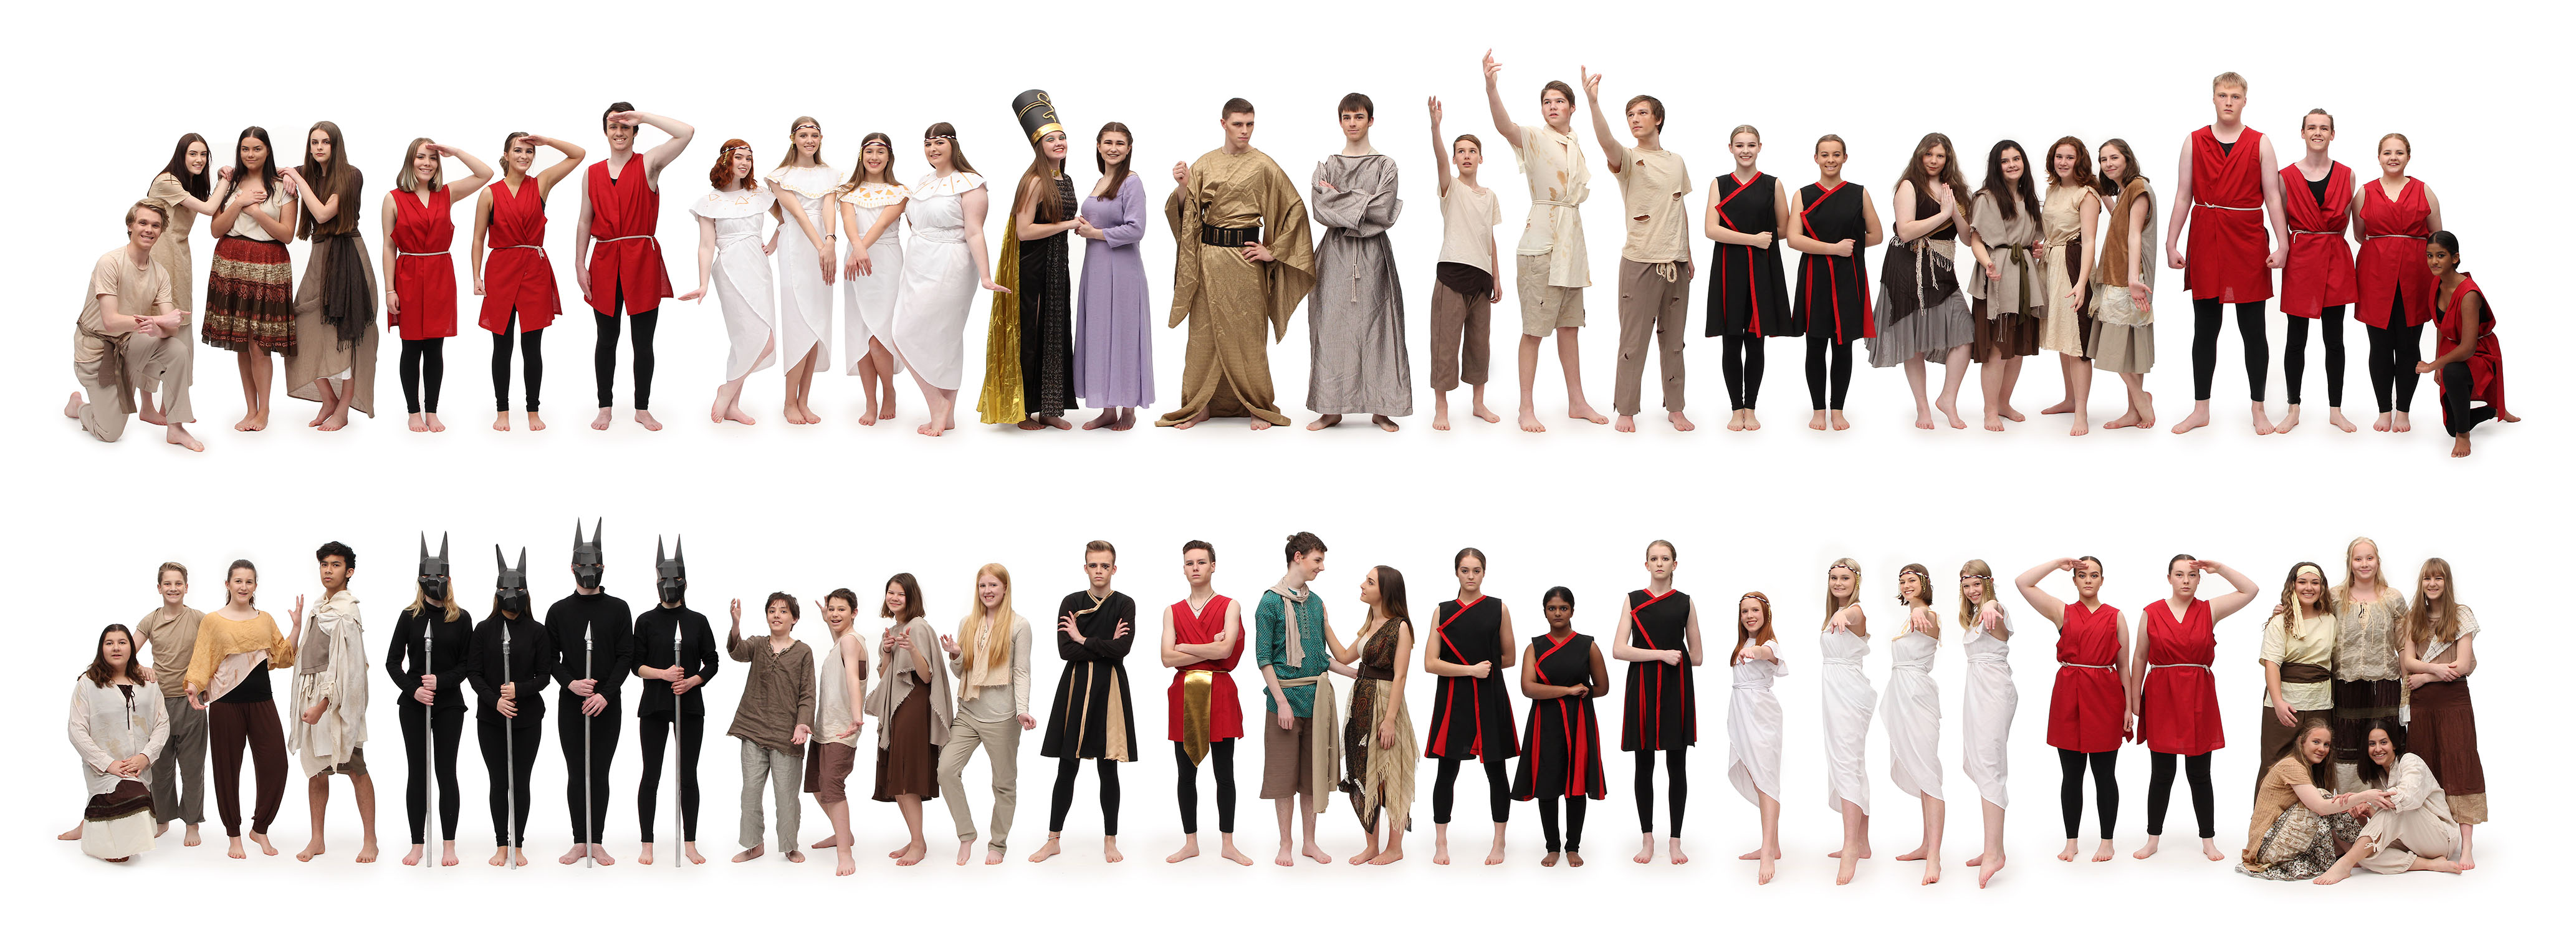 SCHOOL PRODUCTION - AIDA